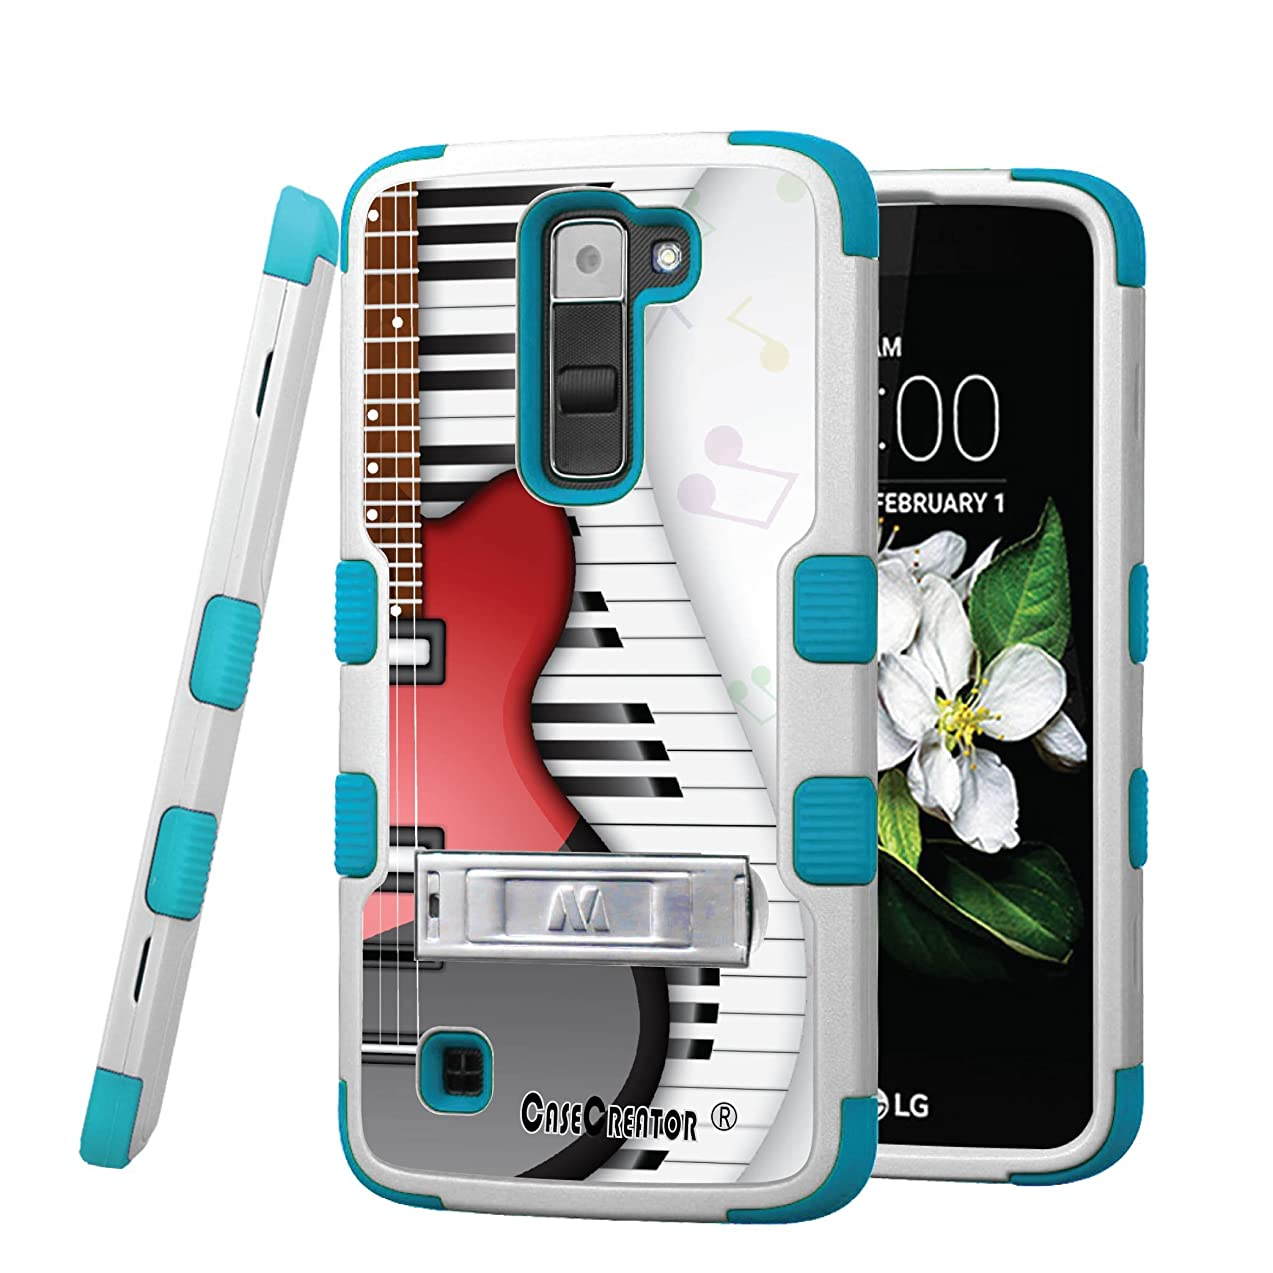 LG K7 Case, CASECREATOR[TM] For LG K7 / LG Tribute 5 (Sprint, MetroPCS, Boost Mobile)~TUFF Hybrid Stand Rubber Hard Case Teal Blue White-Guitar with Piano